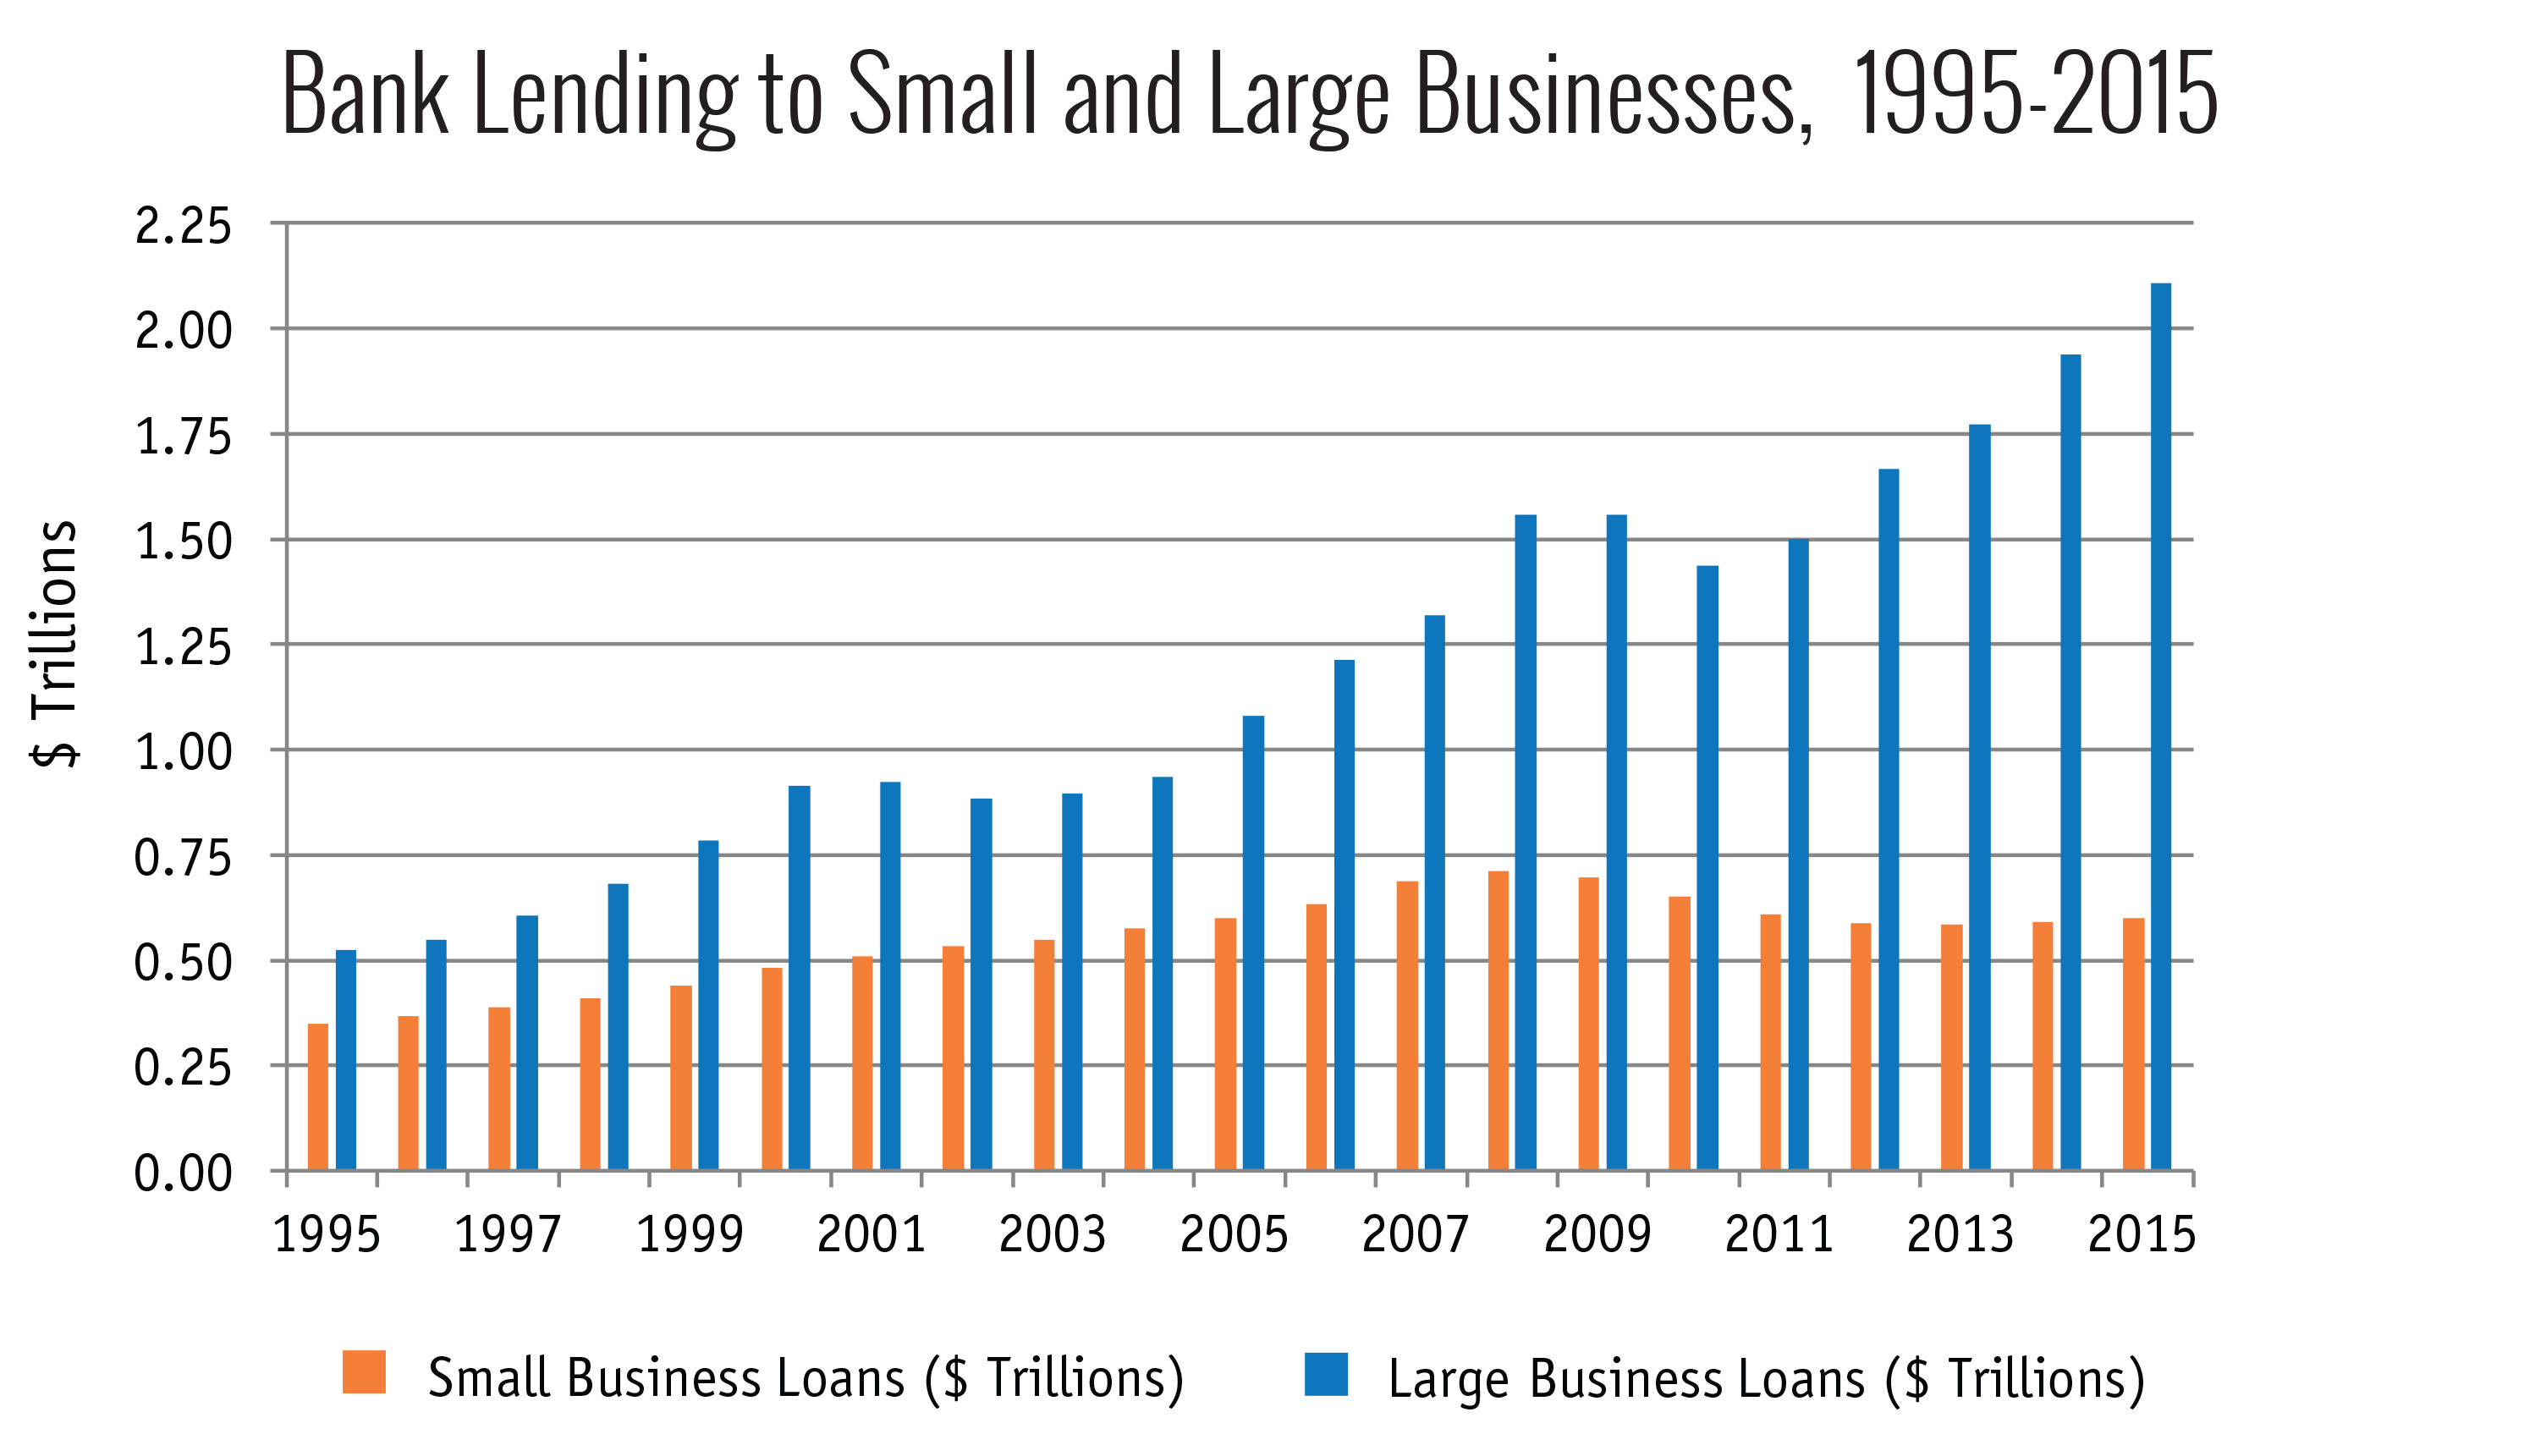 Bank Lending to Small and Large Businesses, 1995-2015